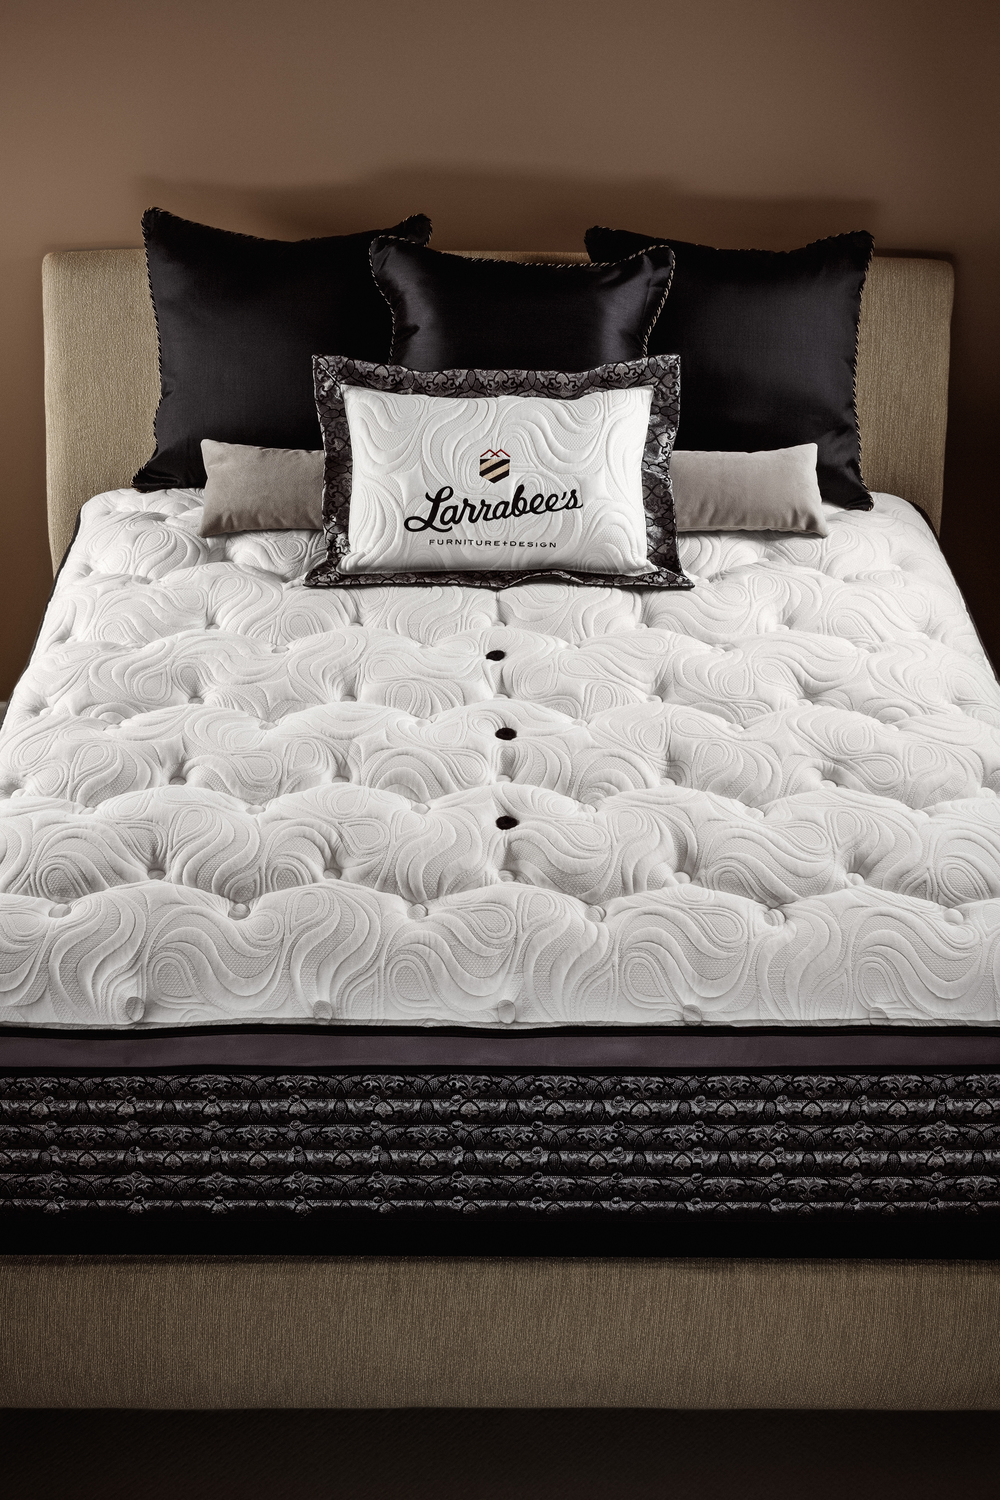 Larrabees_Select_Mattress-(1).jpg